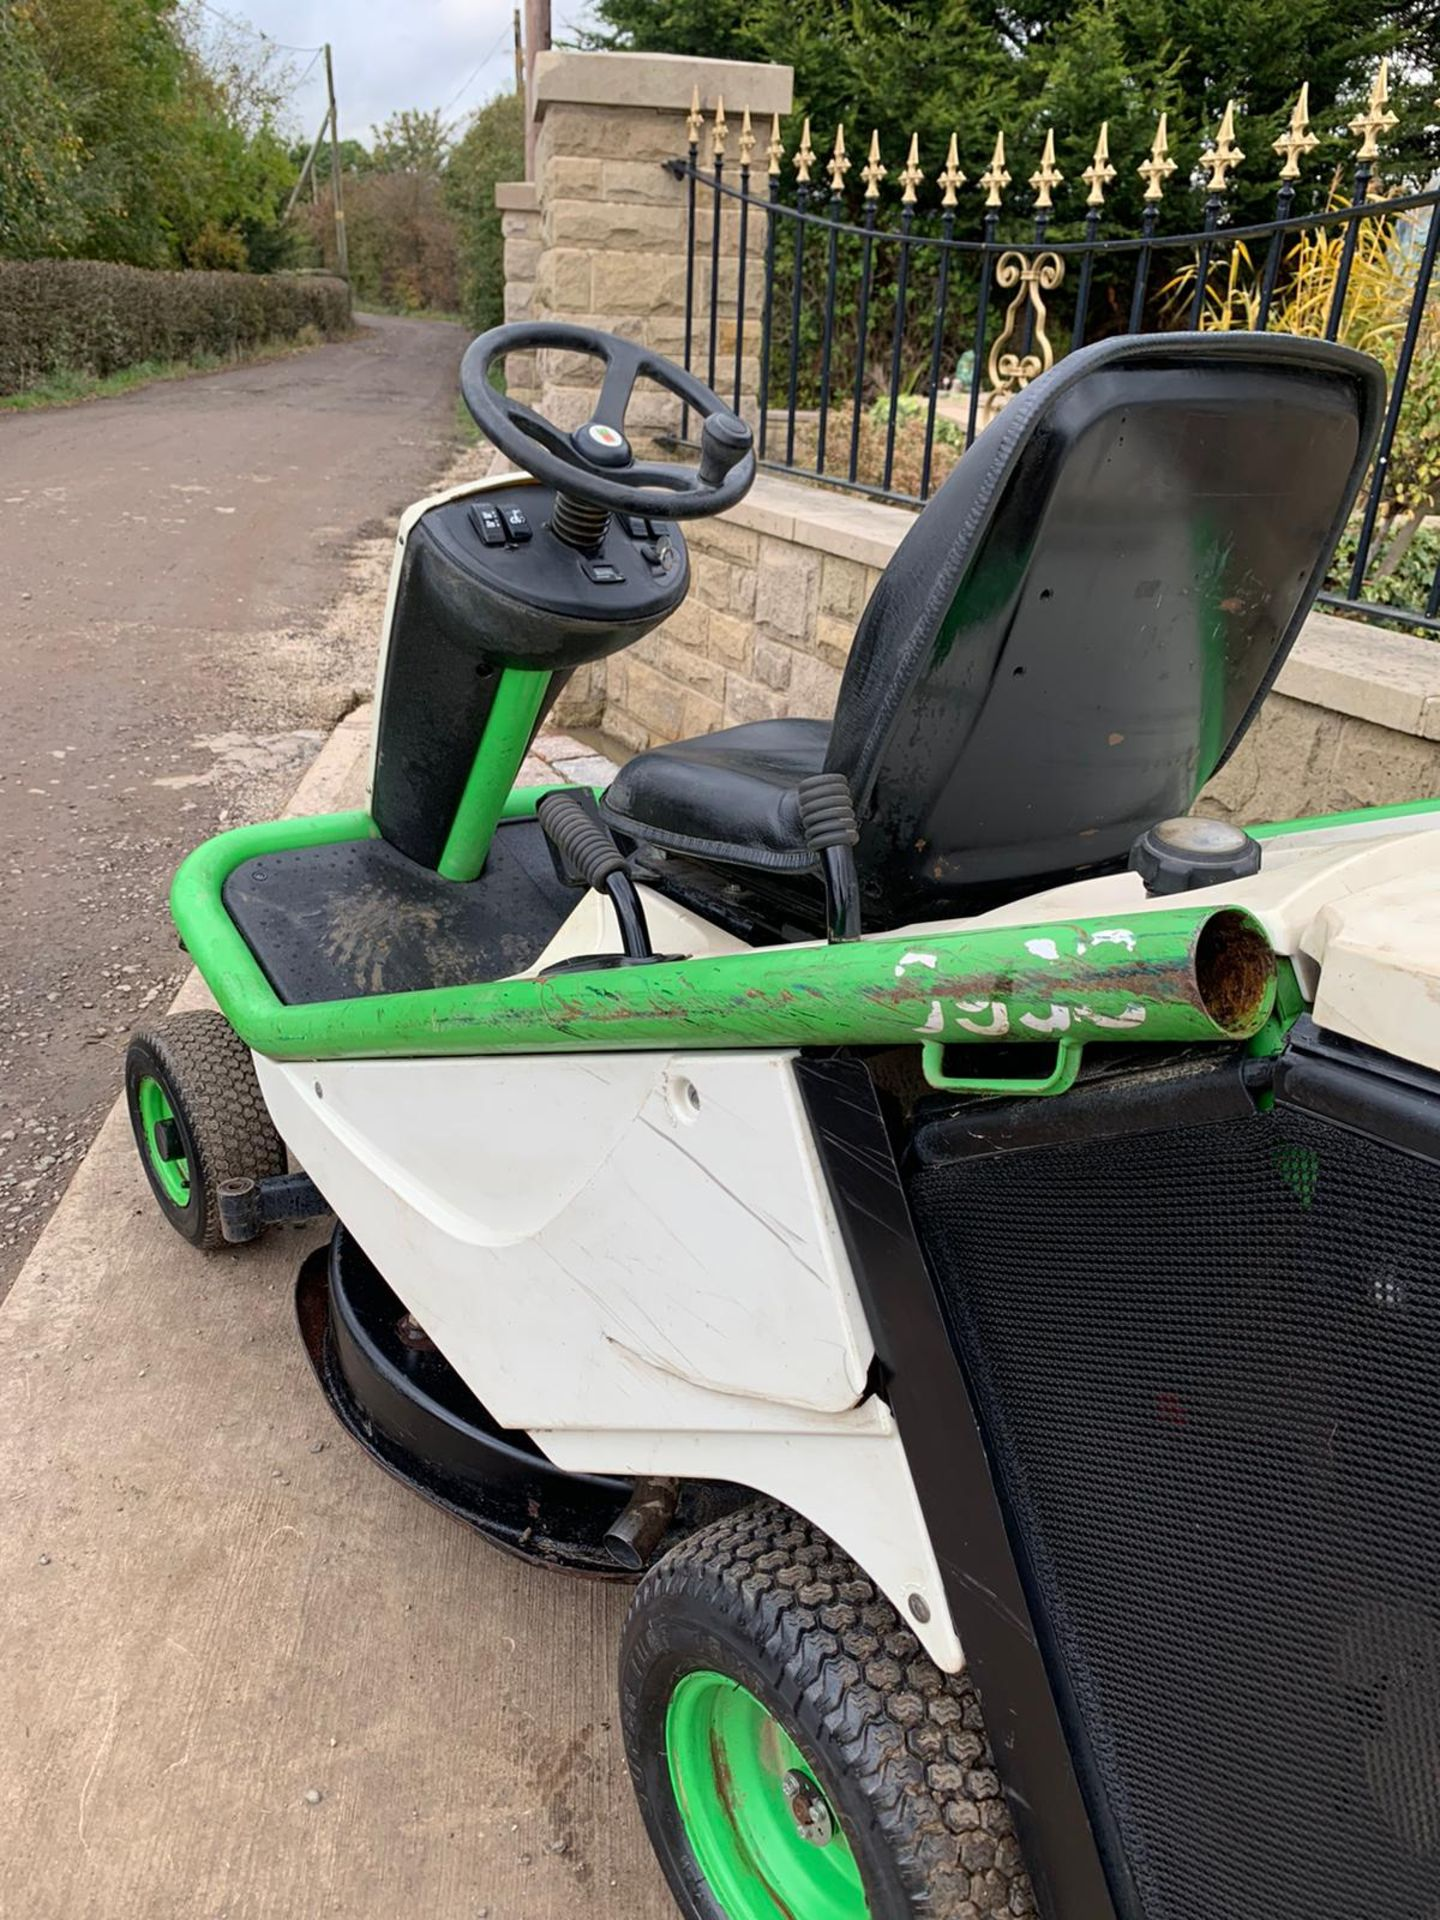 2015 ETESIA HYDRO 80 RIDE ON LAWN MOWER, RUNS, DRIVES AND CUTS *PLUS VAT* - Image 4 of 5